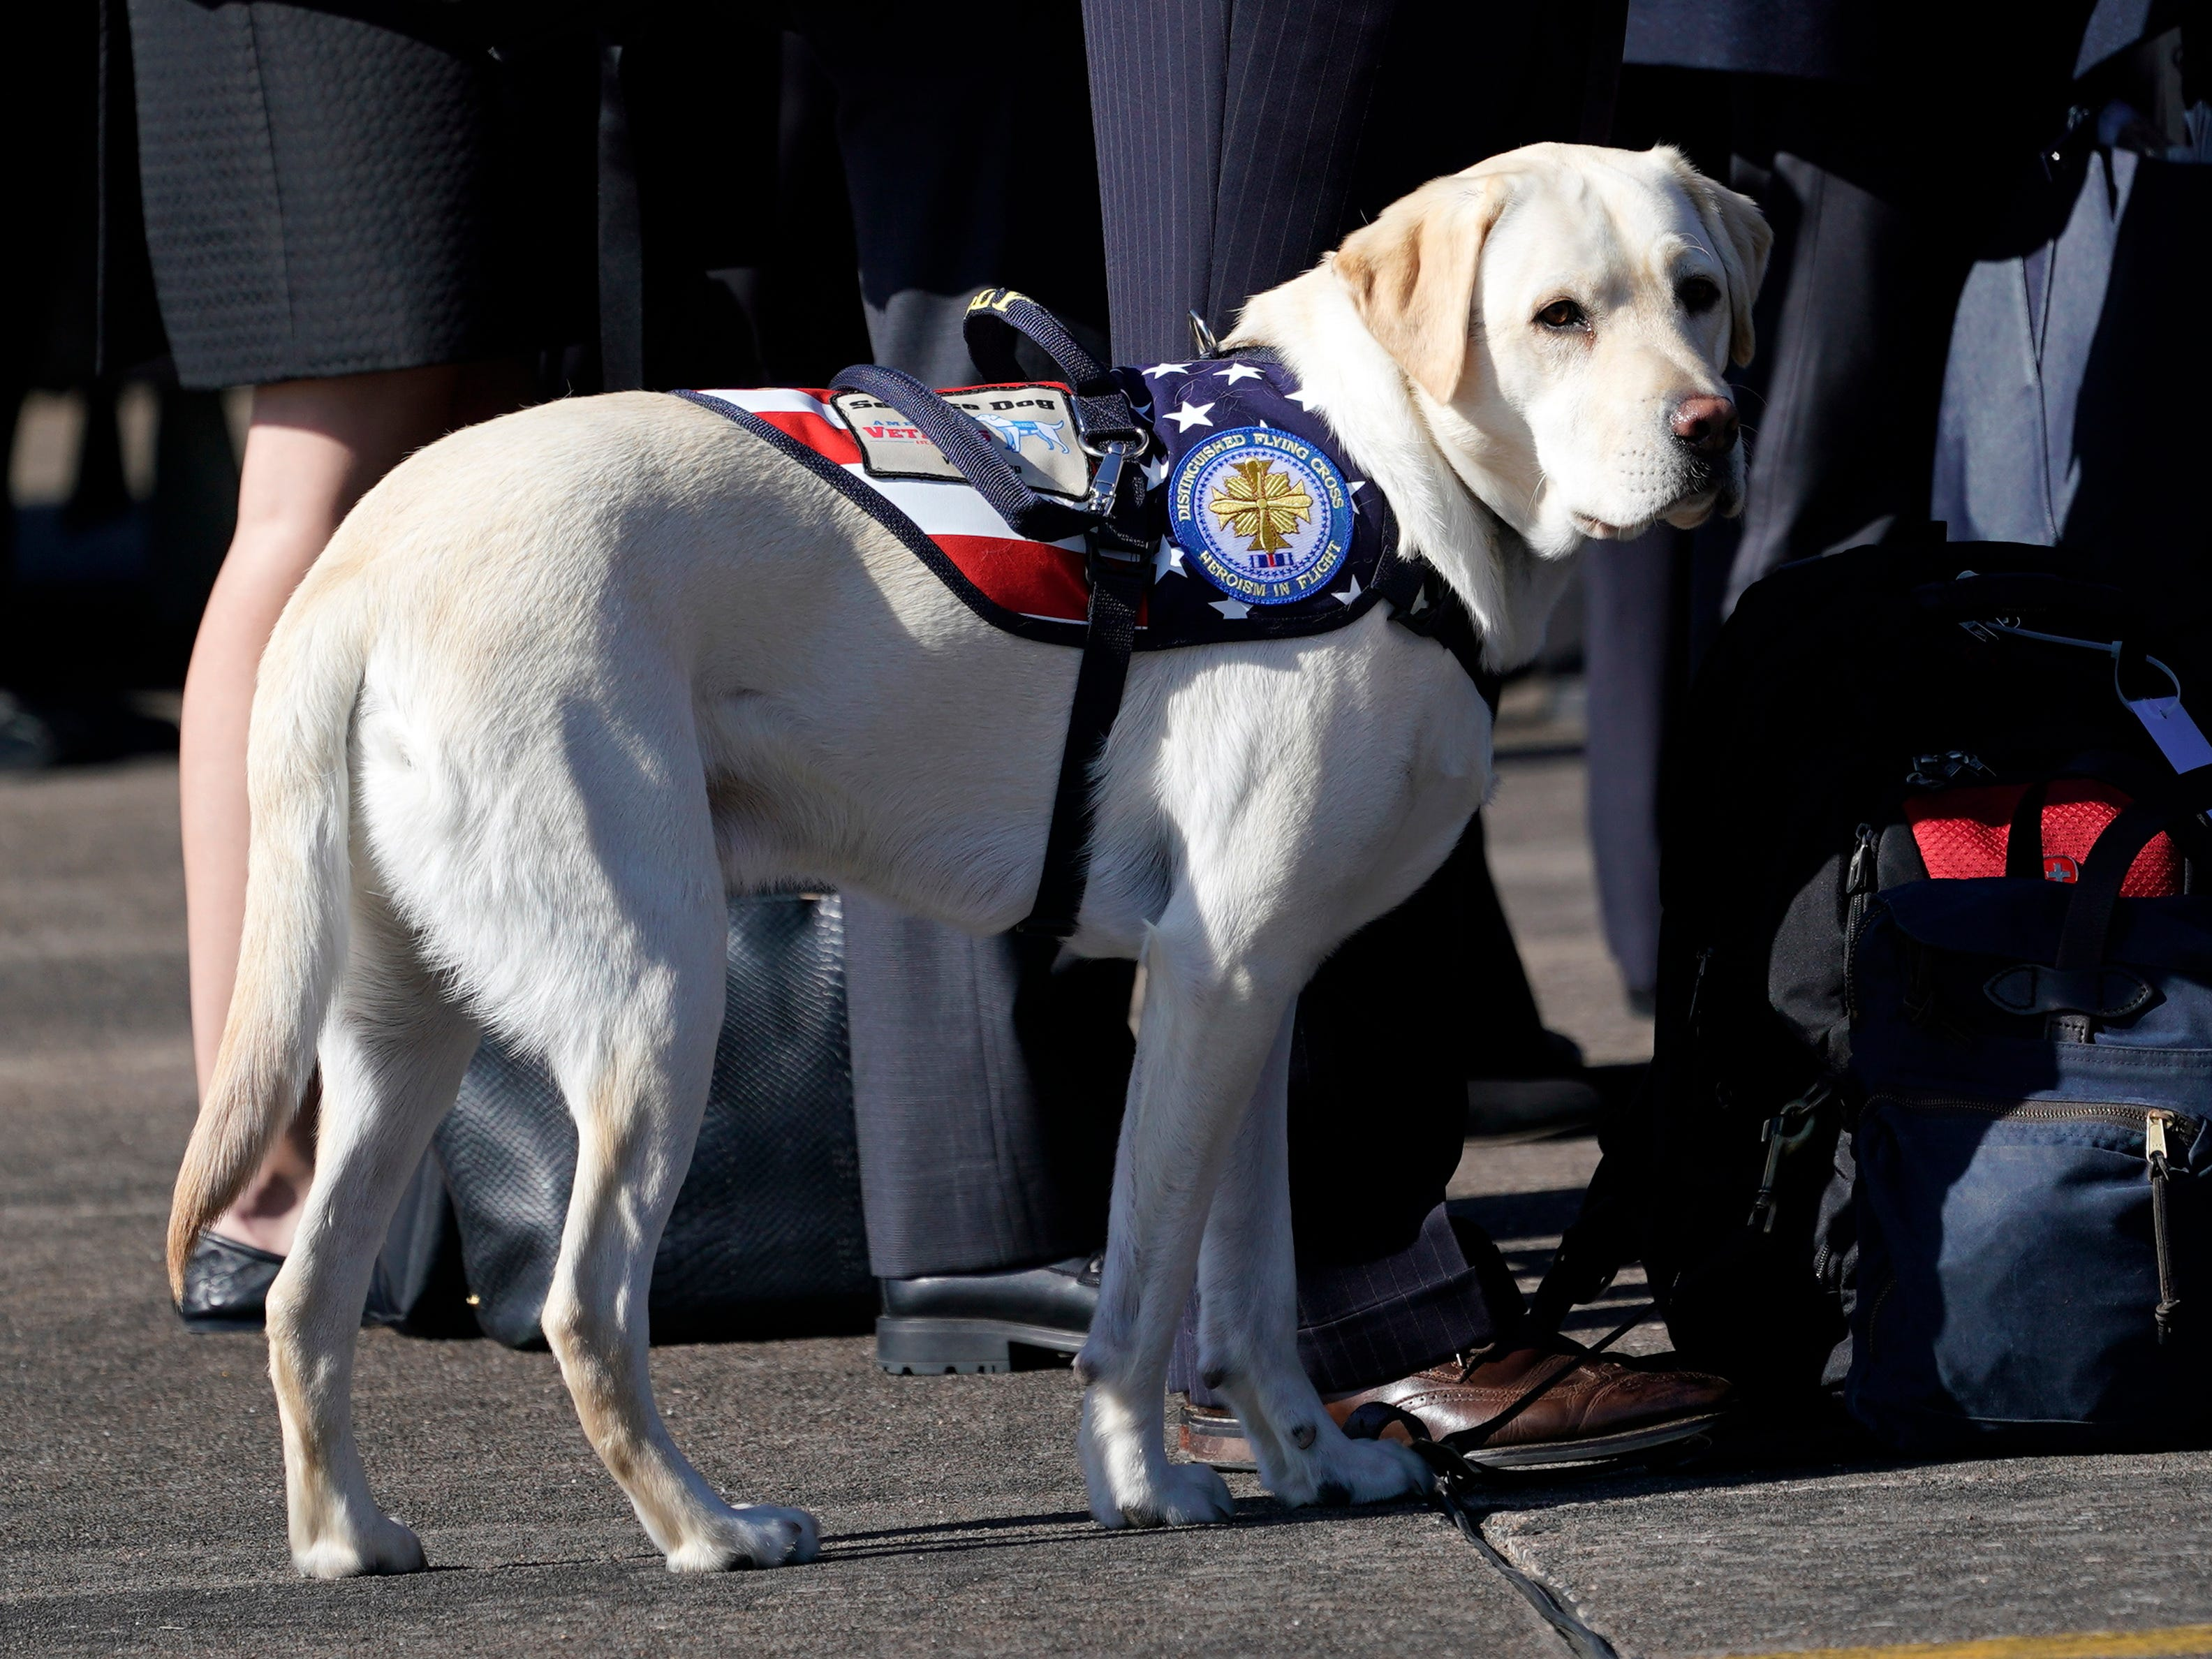 epa07206627 Sully, the yellow Labrador retriever who was former US President George H.W. Bush service dog during a departure ceremony at Ellington Field in Houston, Texas, USA, 03 December 2018. George H.W. Bush, the 41st President of the United States (1989-1993), died at the age of 94 on 30 November 2018 at his home in Texas.  EPA-EFE/David J. Phillip / POOL ORG XMIT: TXDP402